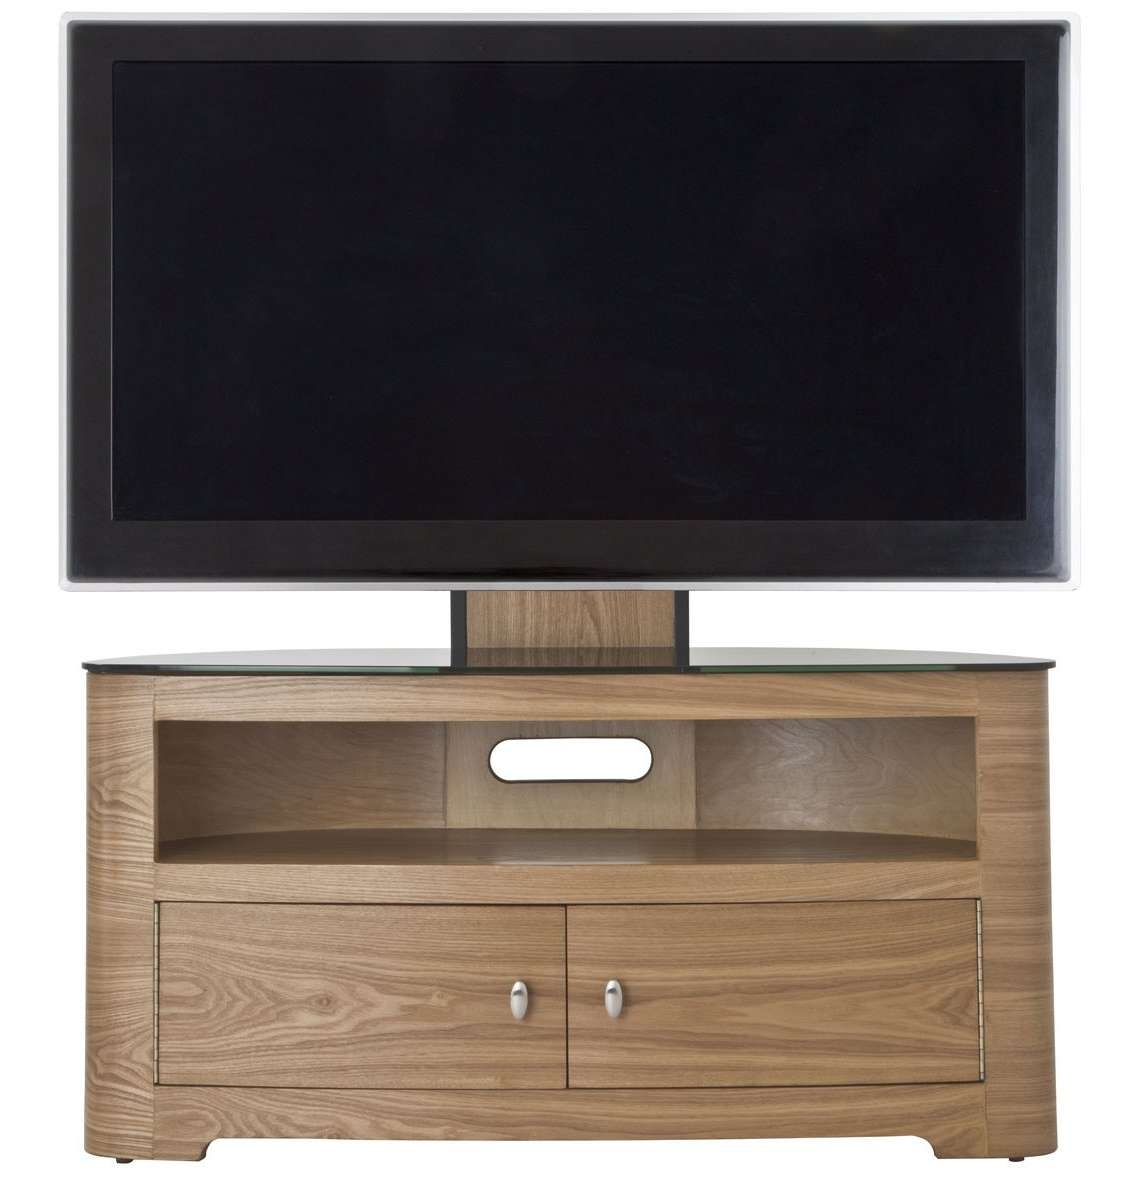 Avf Blenheim Oak Cantilever Tv Stand Intended For Tv Stands In Oak (View 3 of 15)